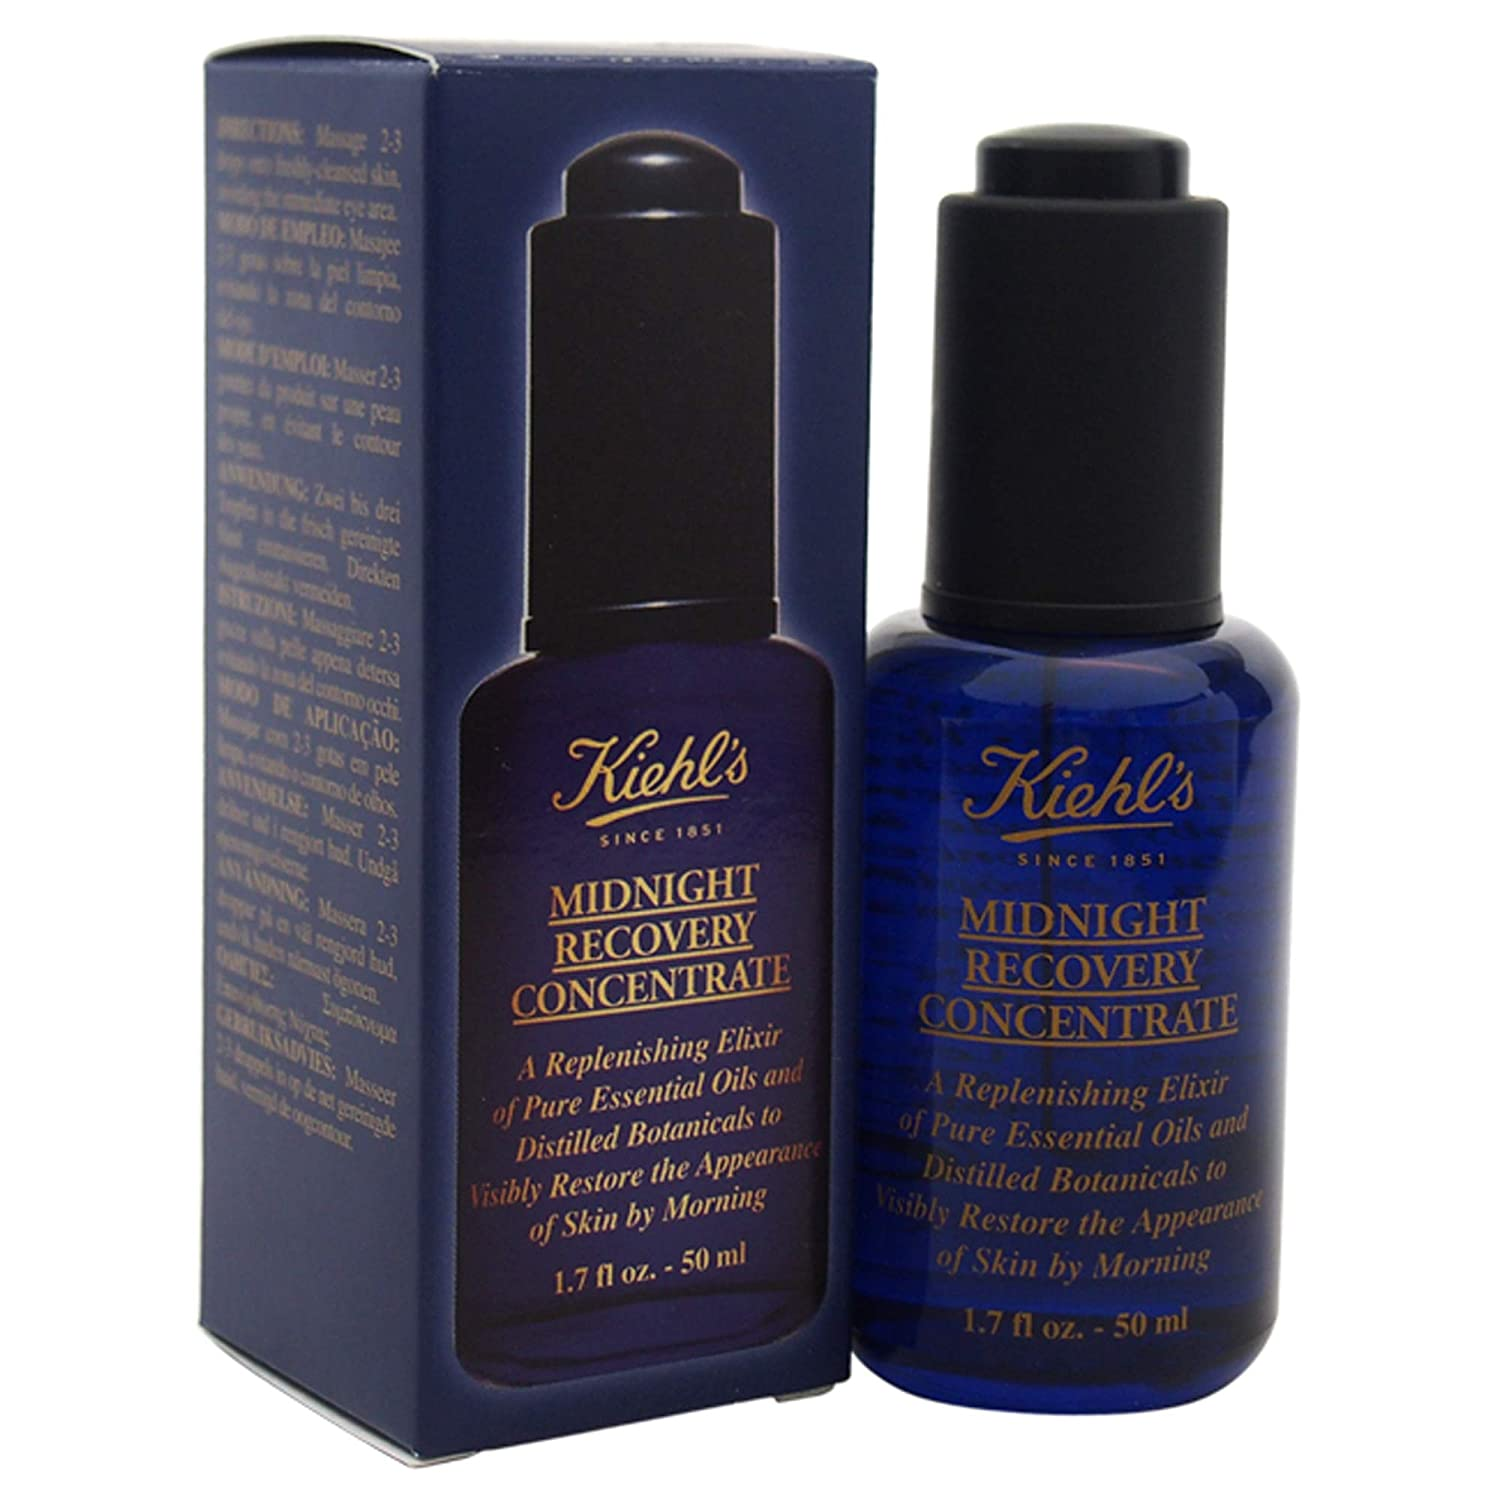 Kiehl's Midnight Recovery Concentrate for Unisex, 1.7 Ounce